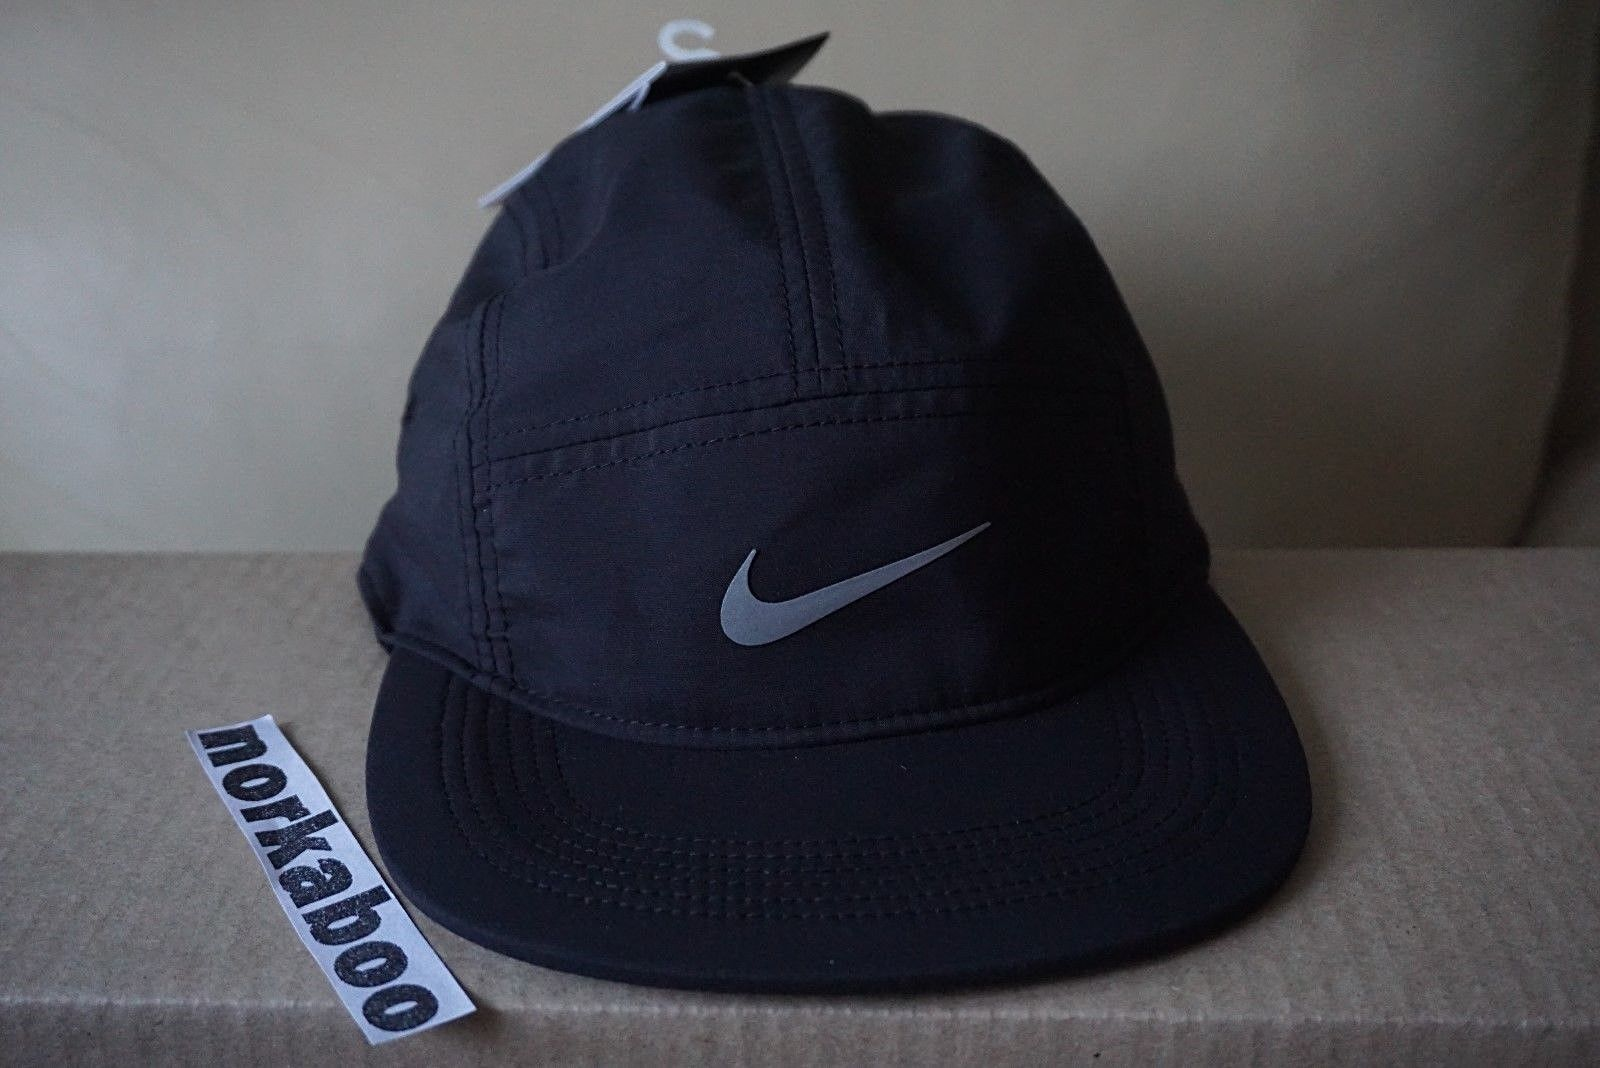 c4dfde413bc Nike Nike Running AW84 Unisex 5 Panel Running Cap Hat 876077-010 Size one  size - Hats for Sale - Grailed